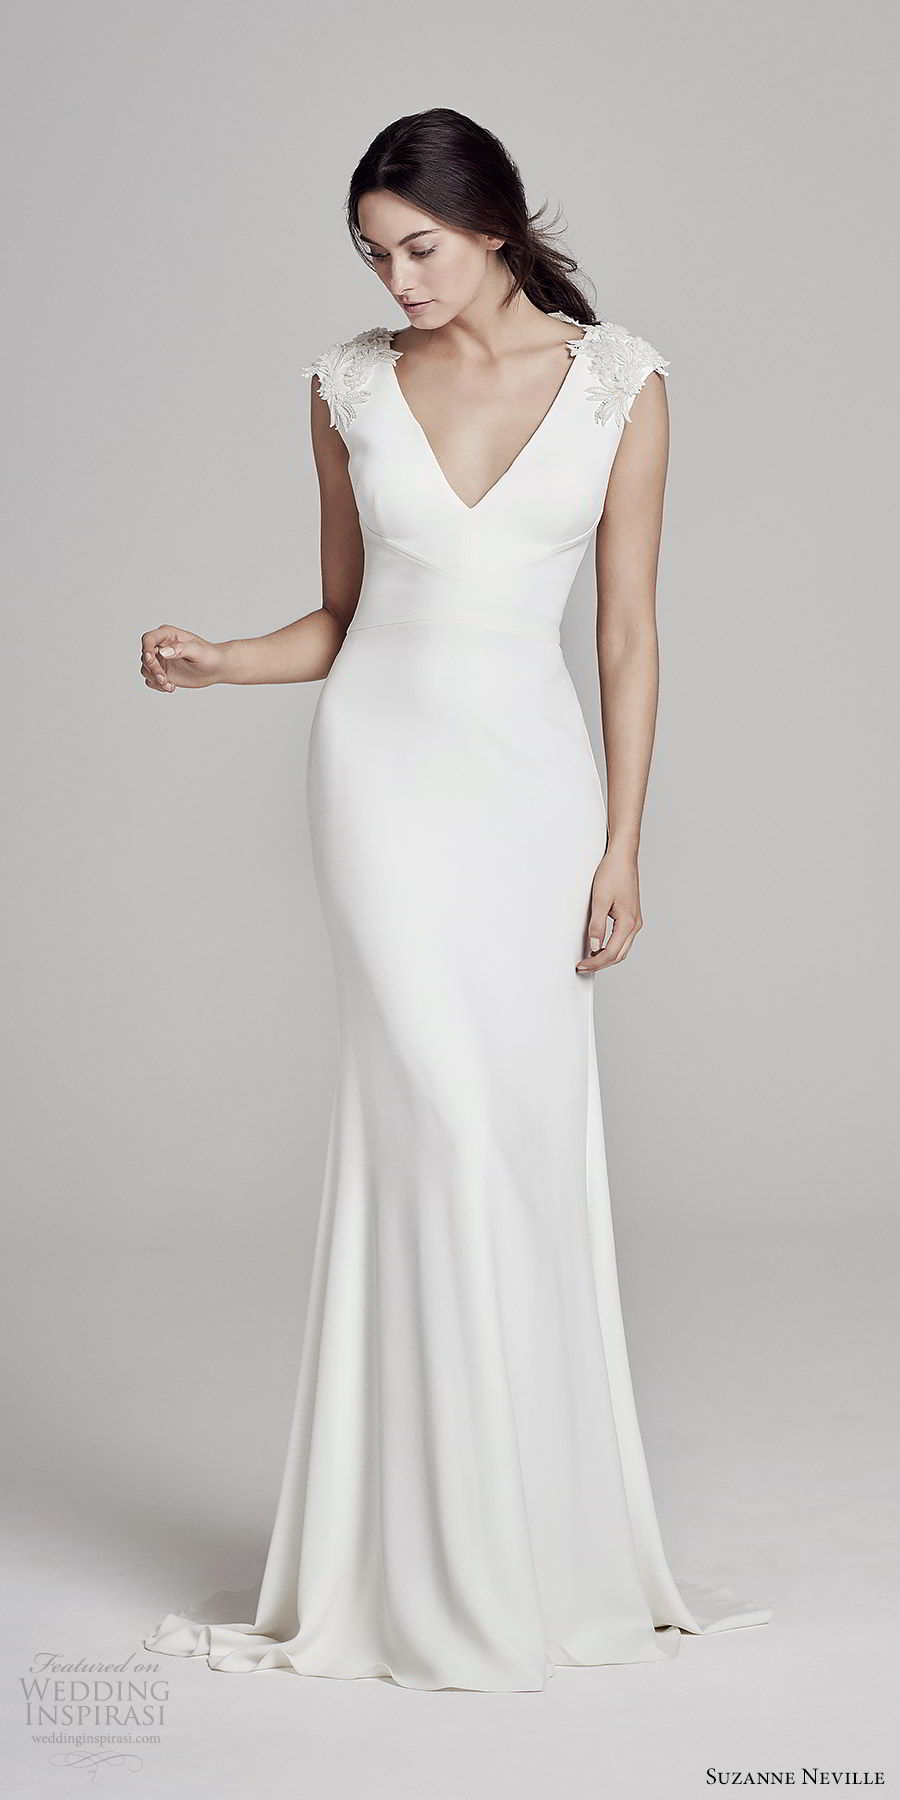 suzanne neville bridal 2019 embellished cap sleeves v neck sheath wedding dress (austen) chic minimal mv